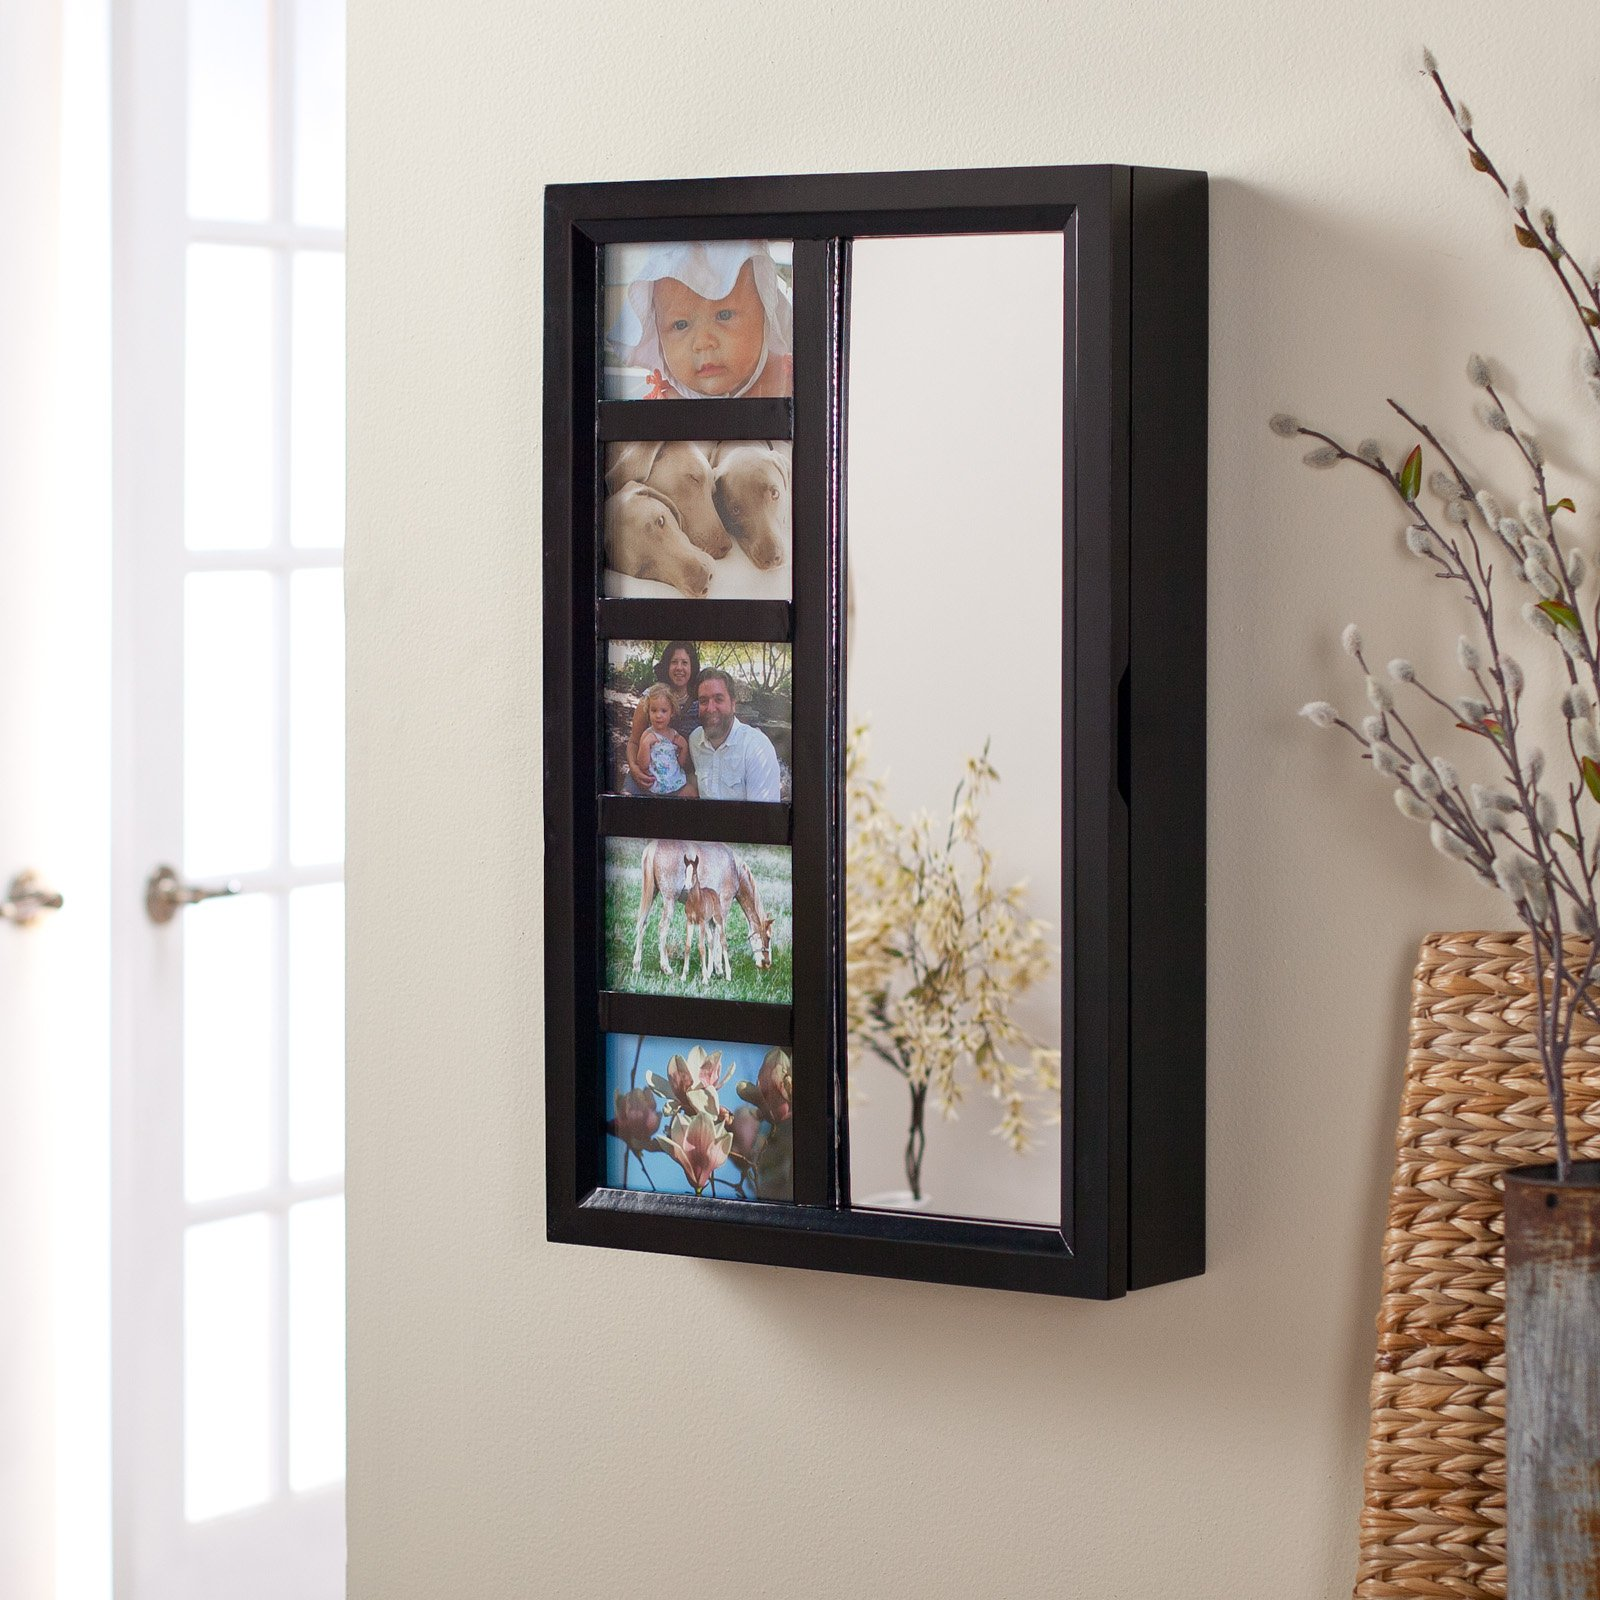 Photo Frames Wall Mount Jewelry Armoire Mirror - High Gloss Black - 16W x 24H in.